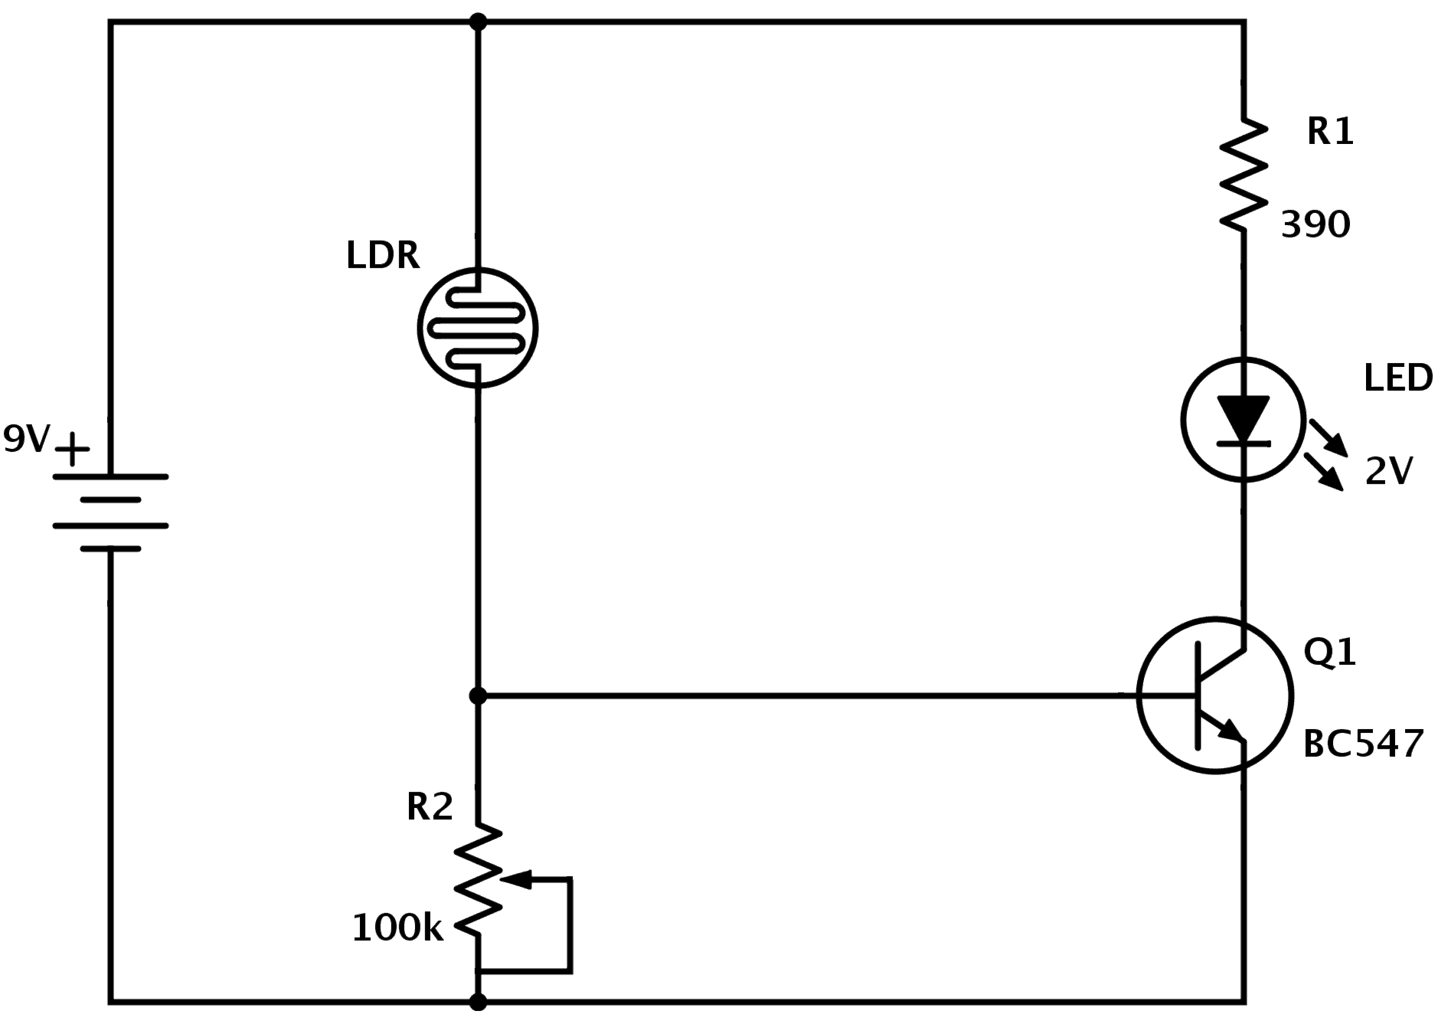 circuit diagram how to read and understand any schematic rh build electronic circuits com 220v circuit wiring diagram 220v circuit wiring diagram